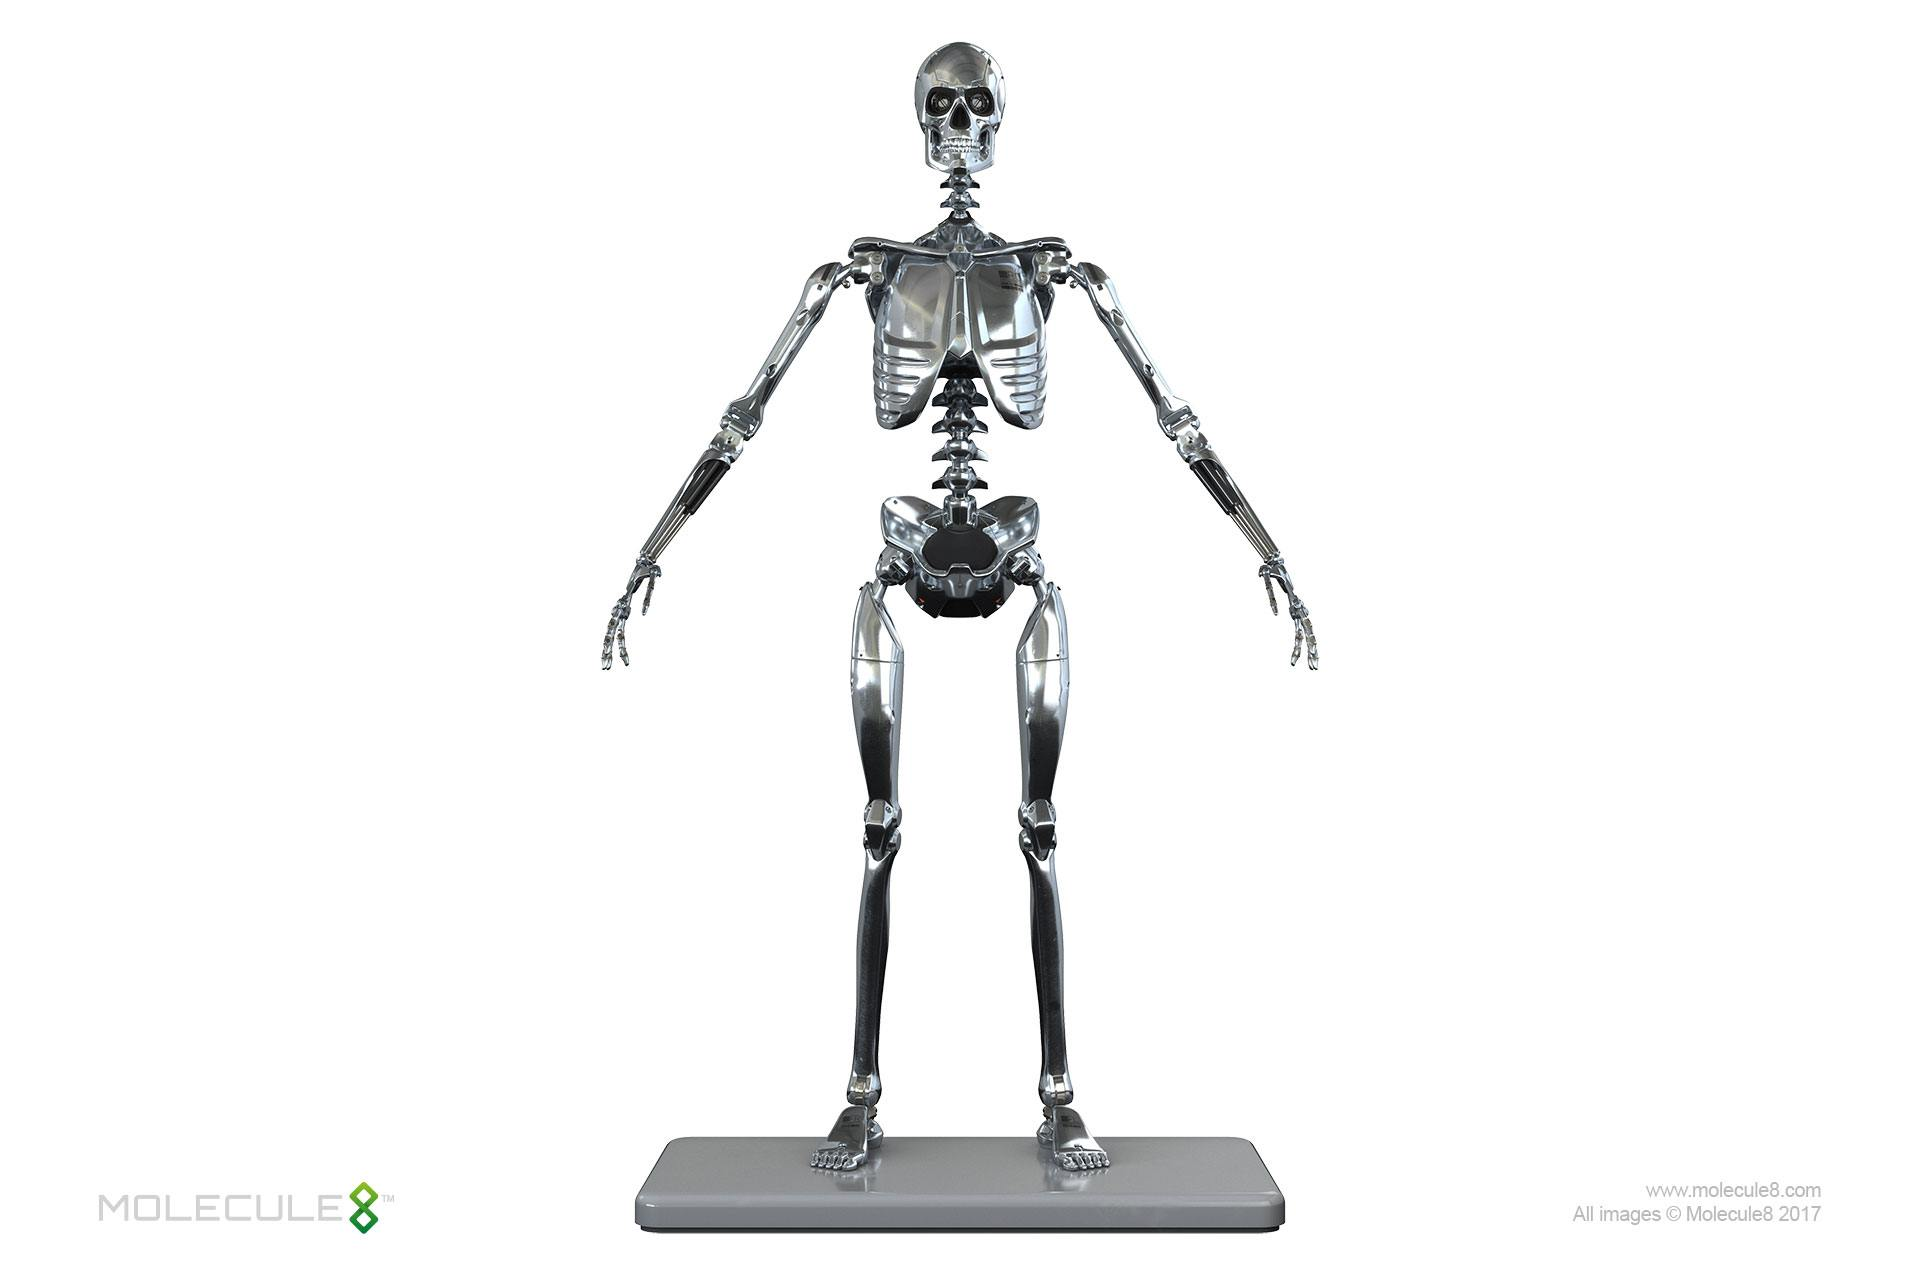 Stainless Steel Mark I Endoskeleton Action Figure 1  6